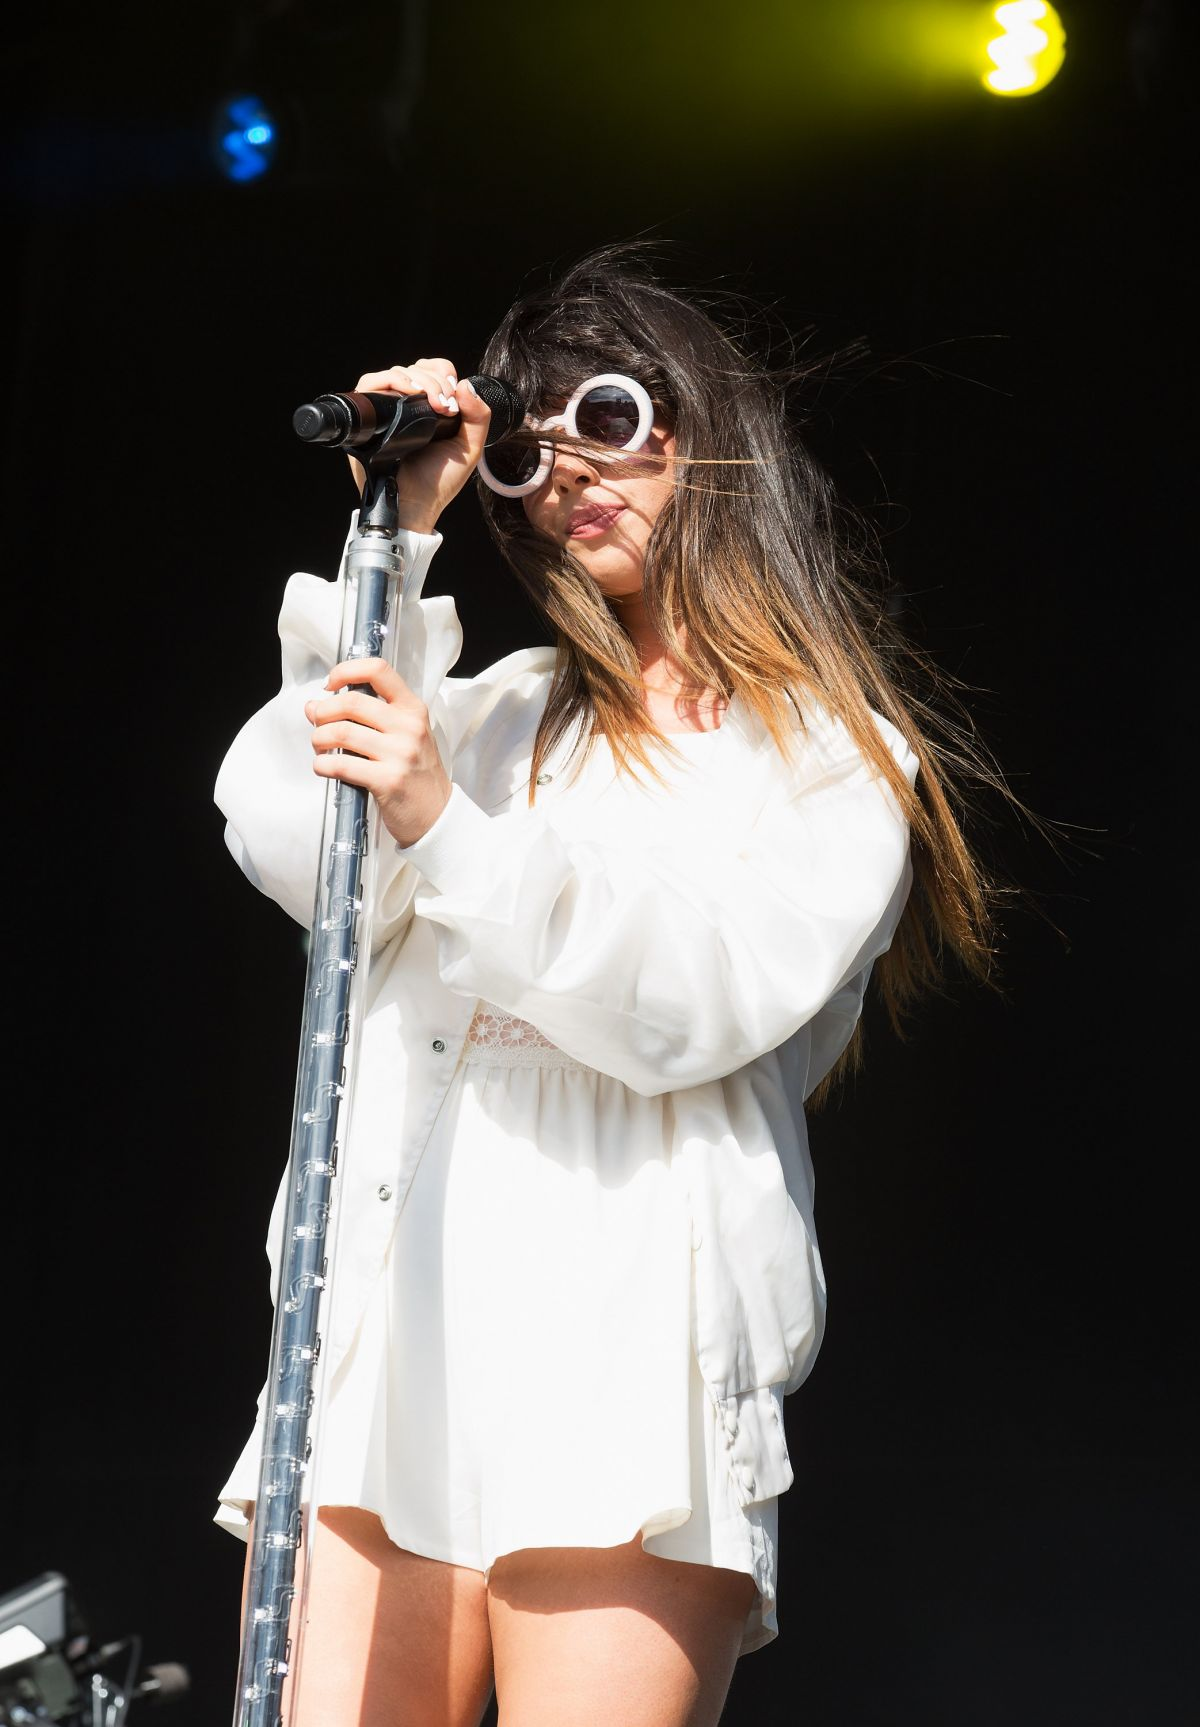 LOUISA ROSE ALLEN Performs at Fusion Festival 2014 in Birmingham